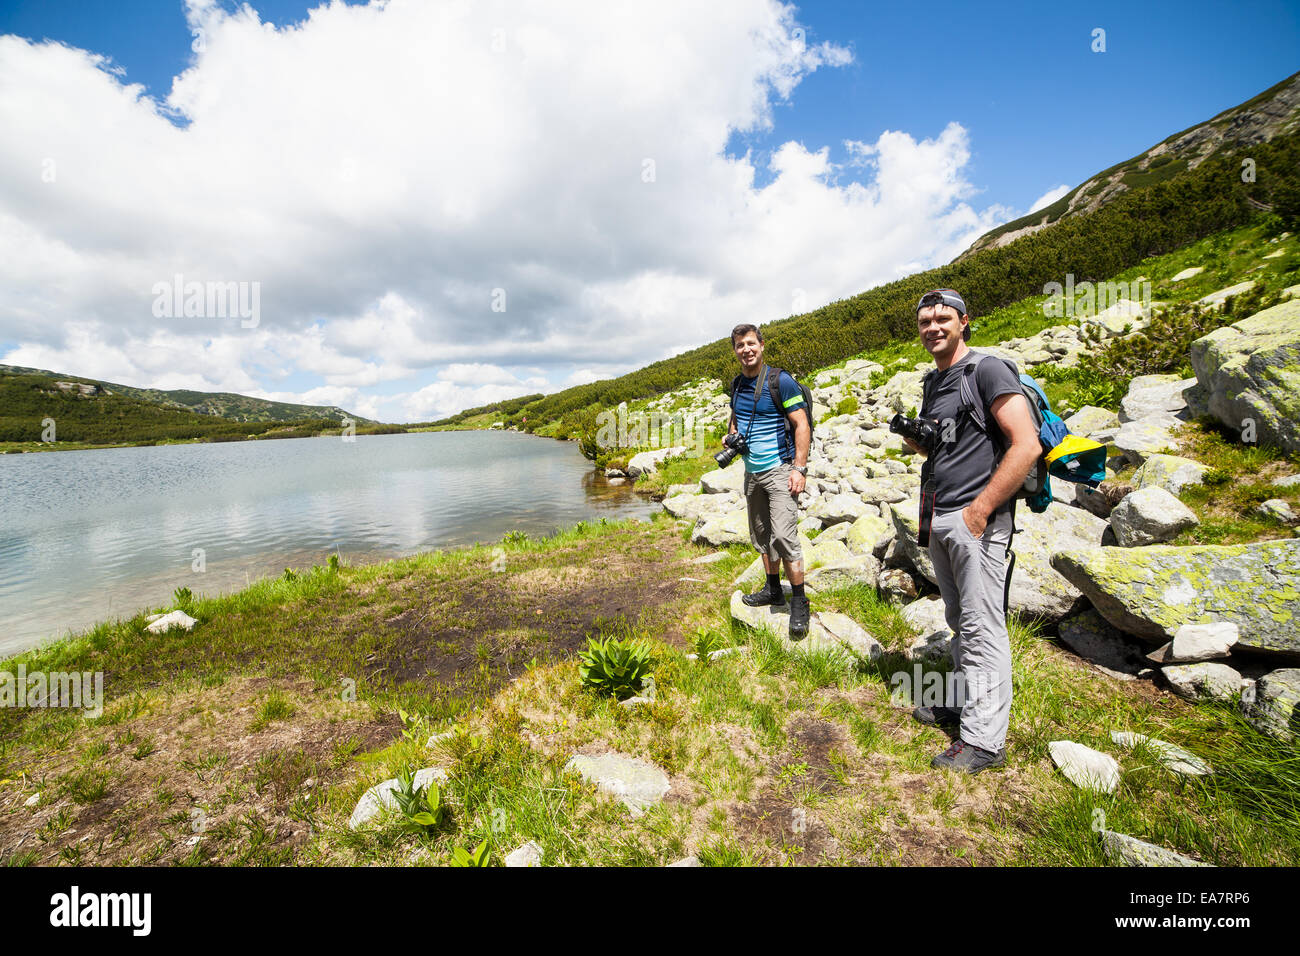 Two caucasian hikers with backpacks walking around a lake in the mountains Stock Photo